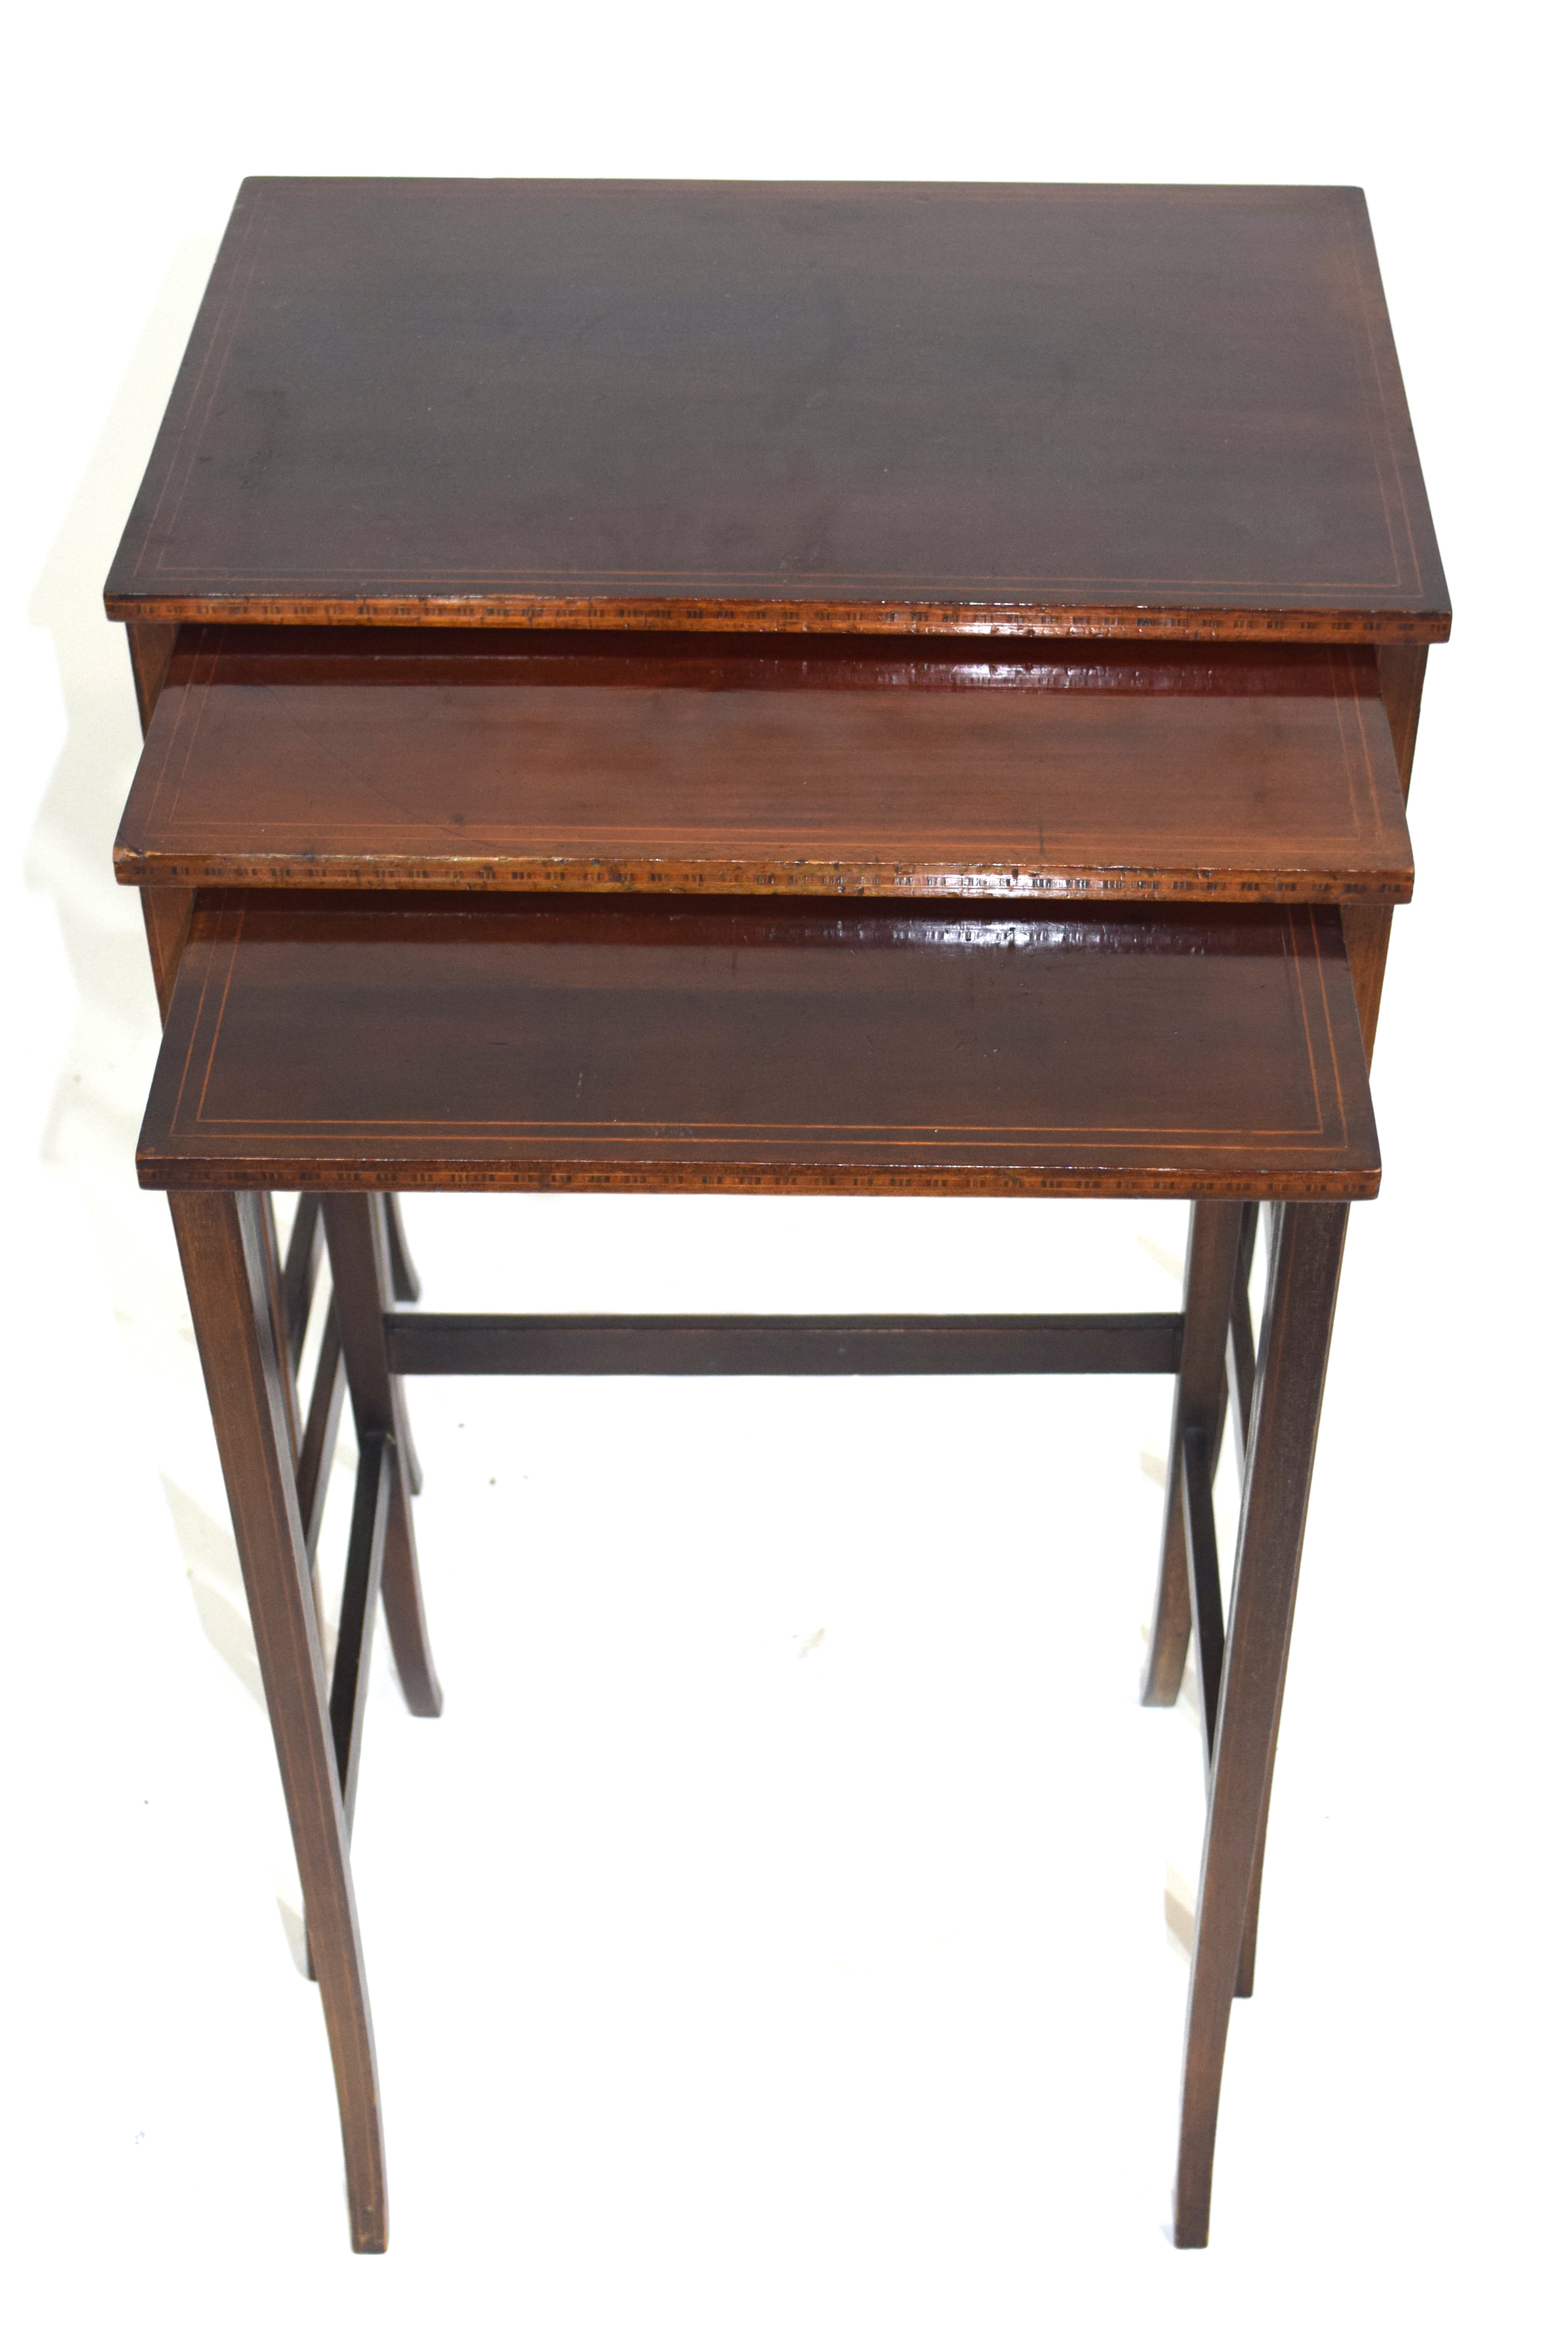 Nest of three Edwardian mahogany and inlaid occasional tables on slender legs, largest 49.5cm wide